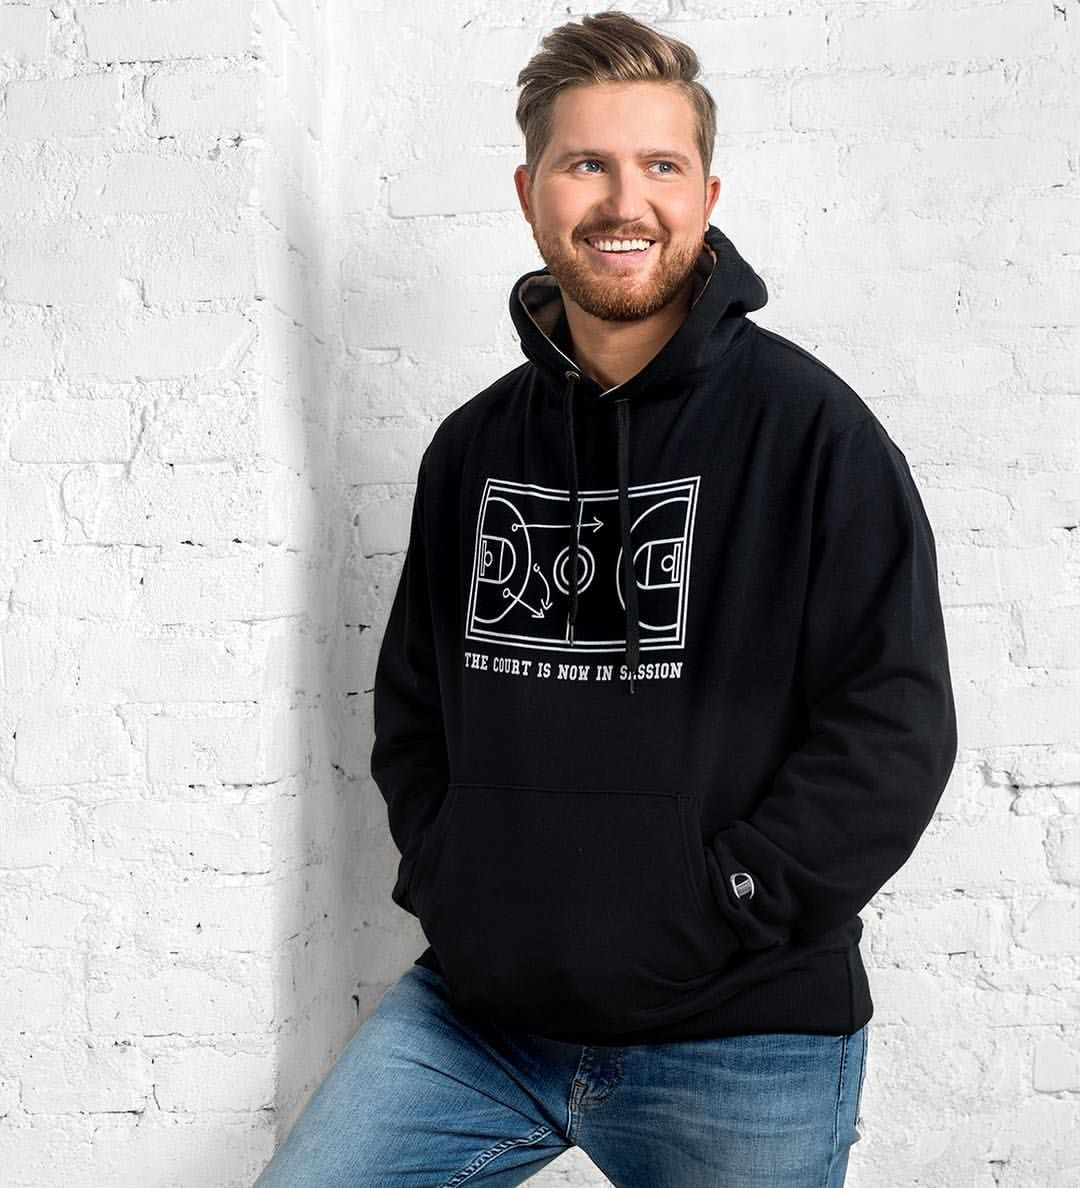 Champion Printful New Champion Hoodies And Sweatshirts Are Now Waiting For Your Prints Printful Printo Sweatshirts Custom Hoodies Champion Hoodie [ 1188 x 1080 Pixel ]